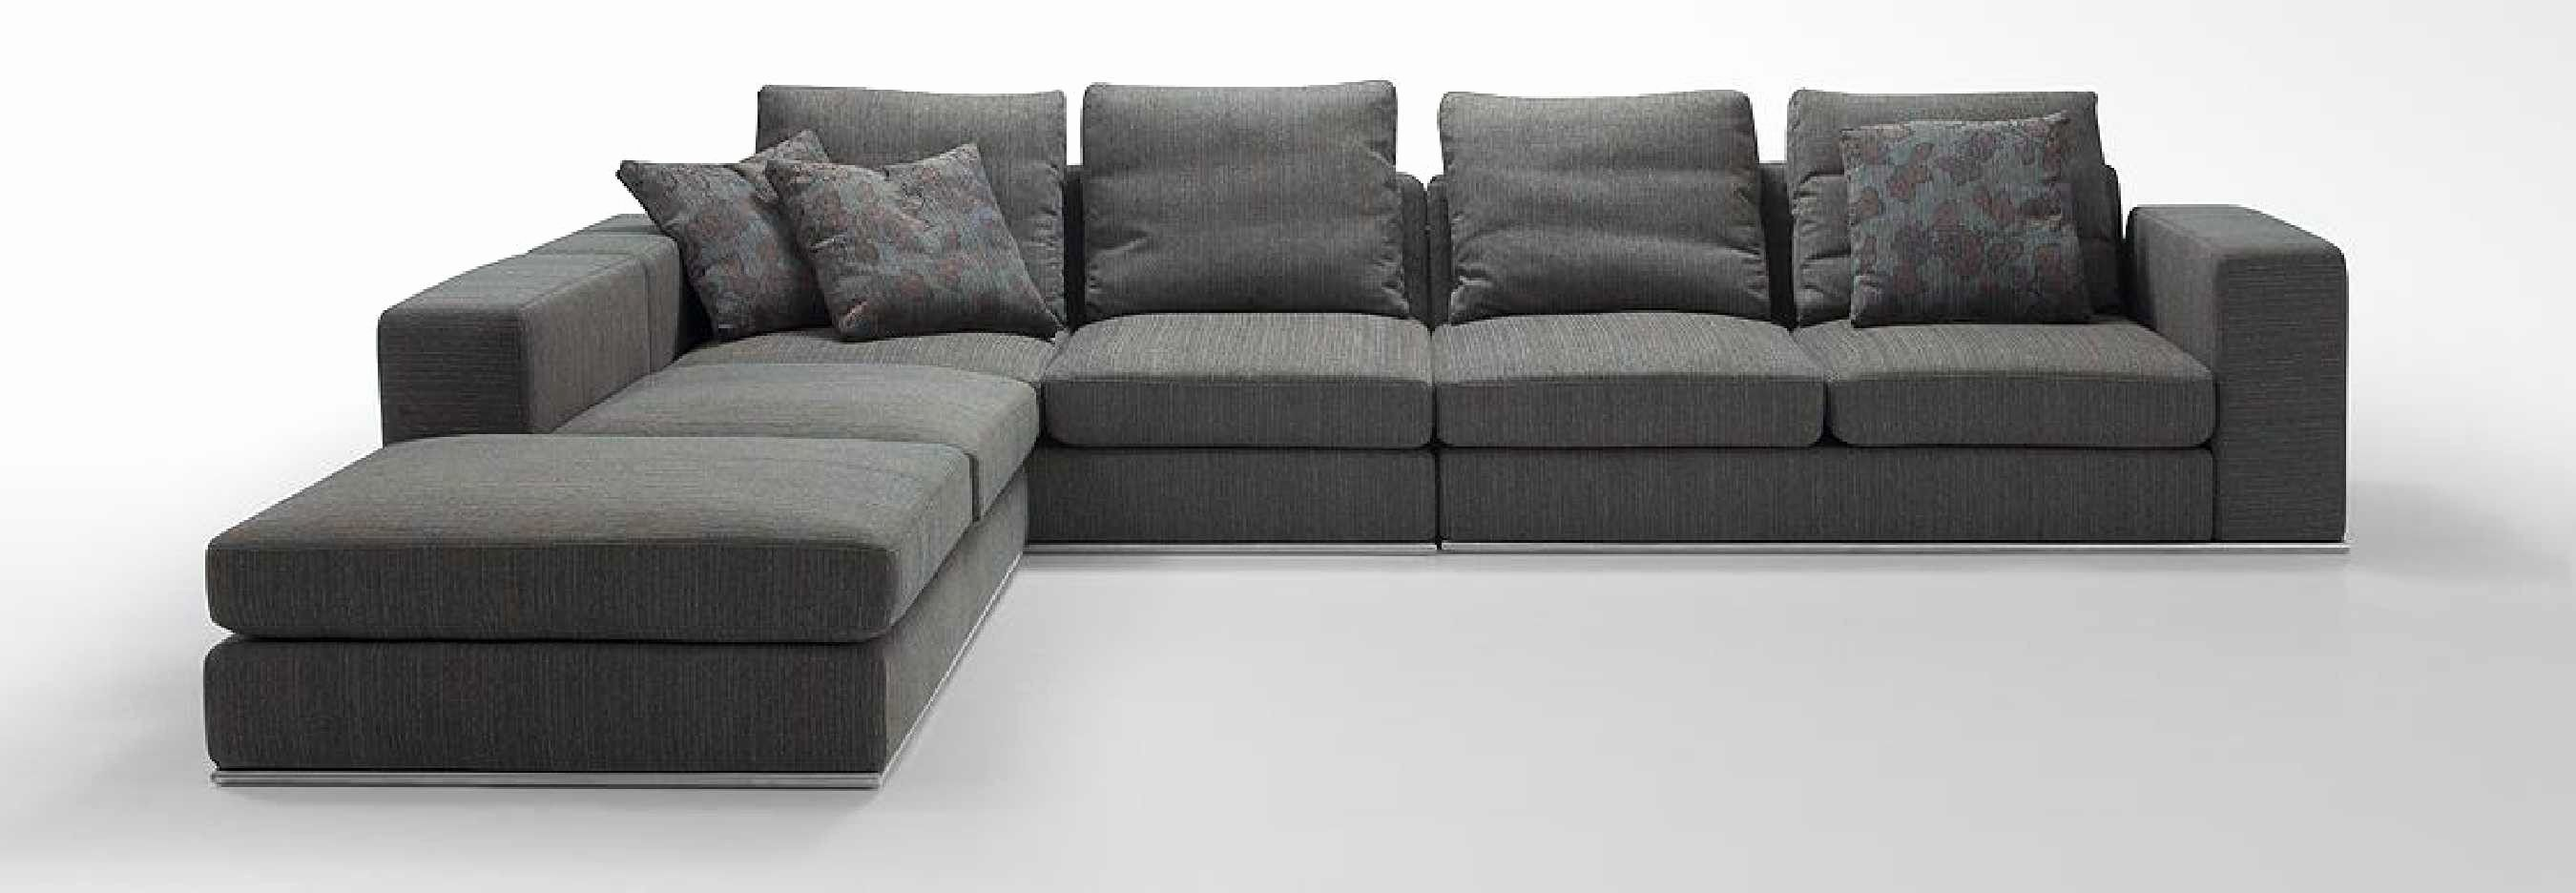 Inspirational Modern Grey Sectional Sofa Pictures Modern Grey